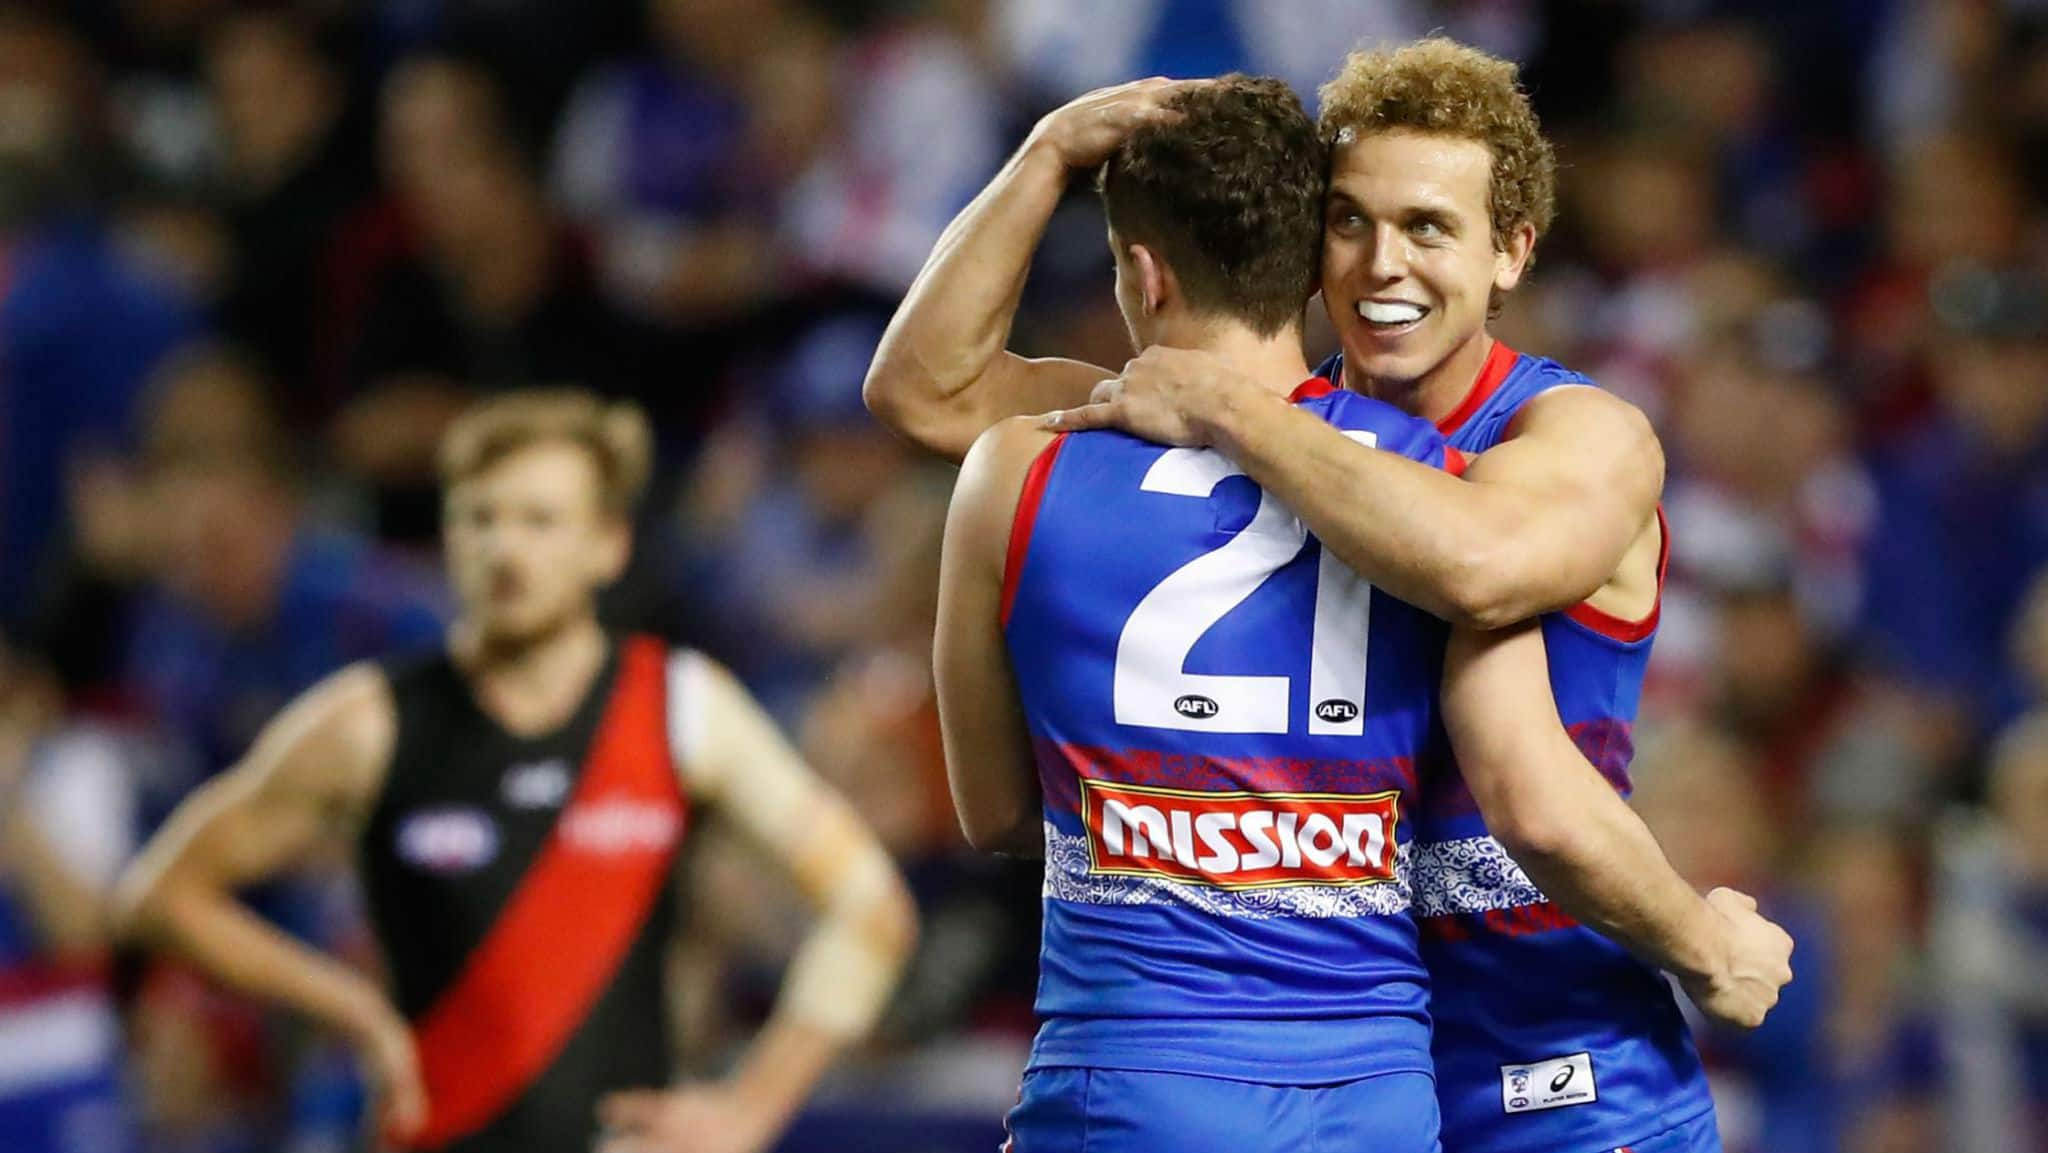 Can Tom Liberatore and Mitch Walllis recover their Fantasy talent? - AFL,Fantasy,Western Bulldogs